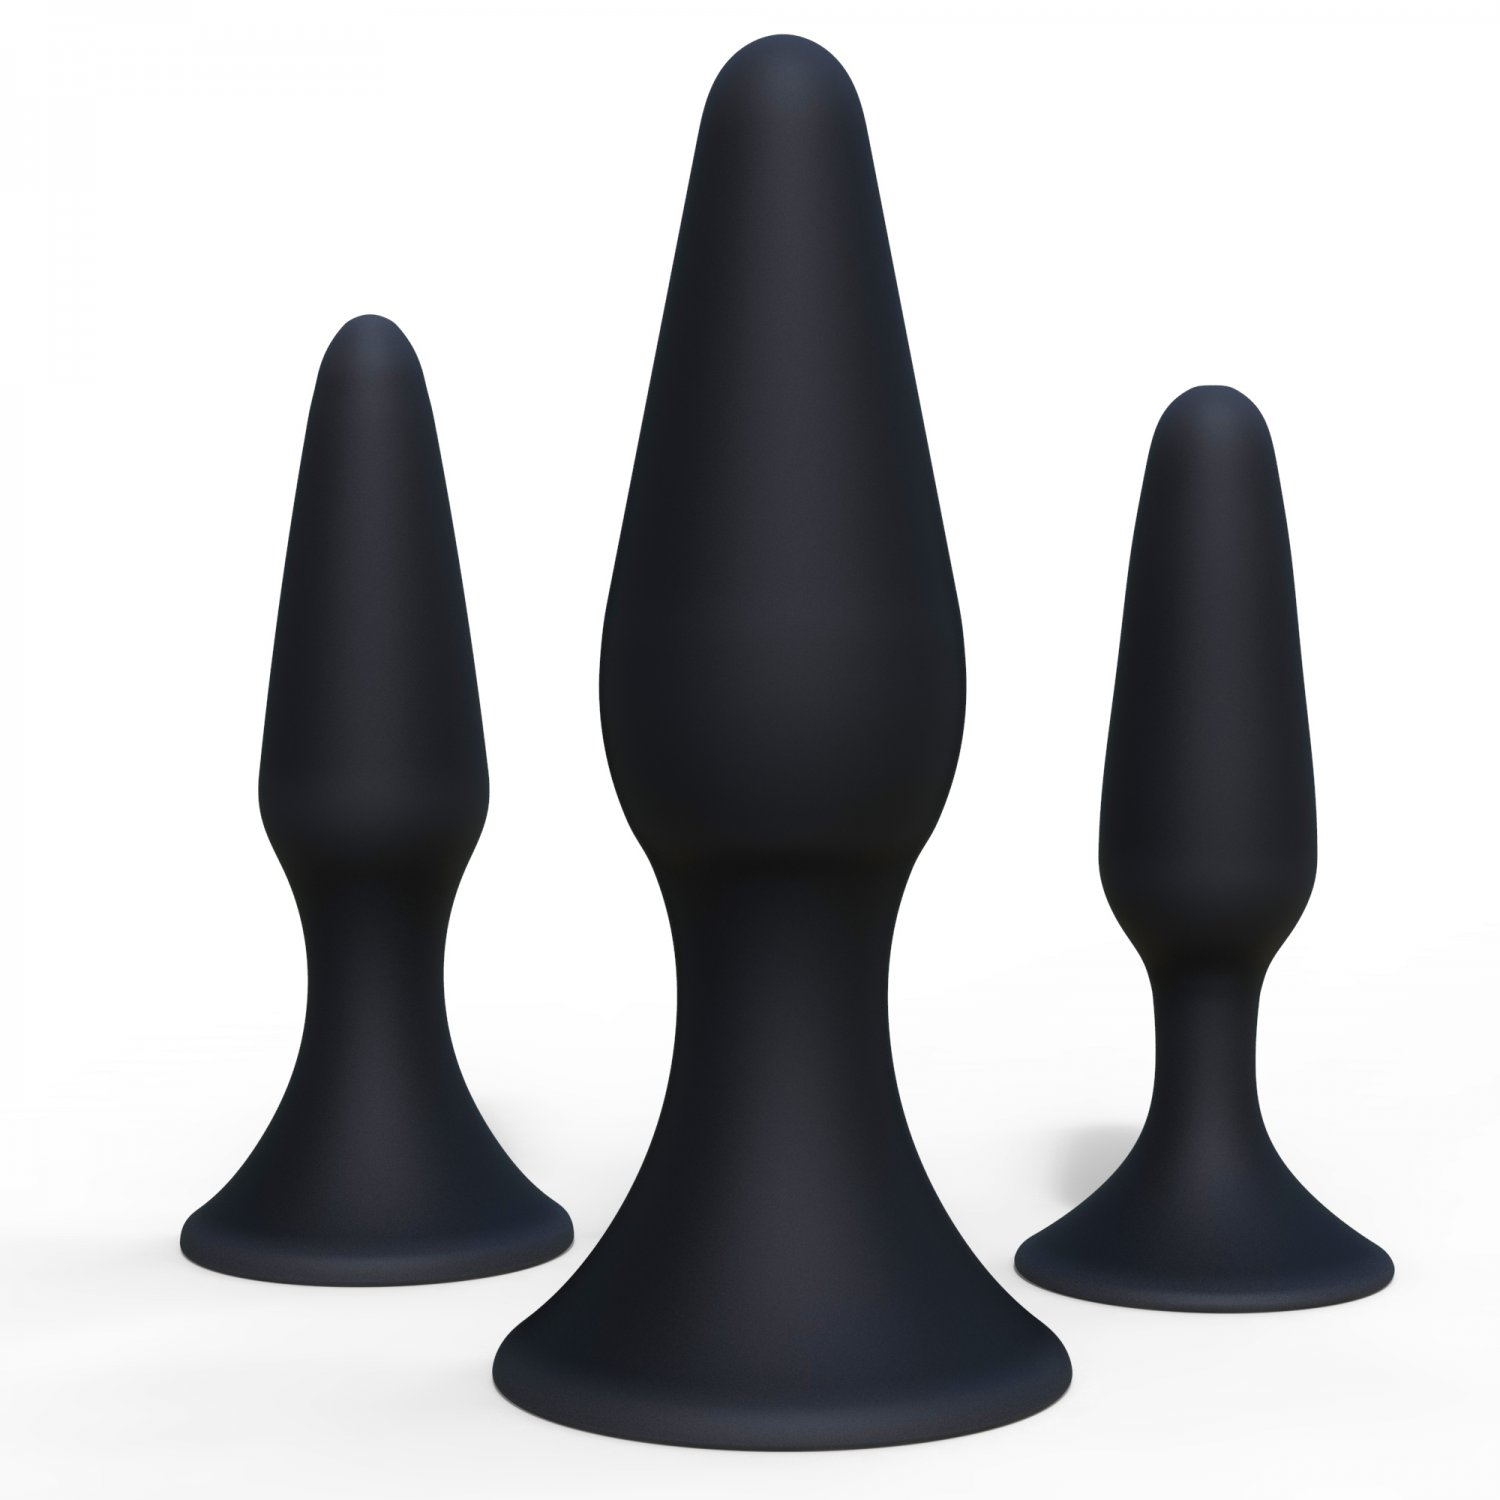 Set of 3 Healthy Vibes Black Butt Plugs - Flexible Silicone Anal Starter Kit